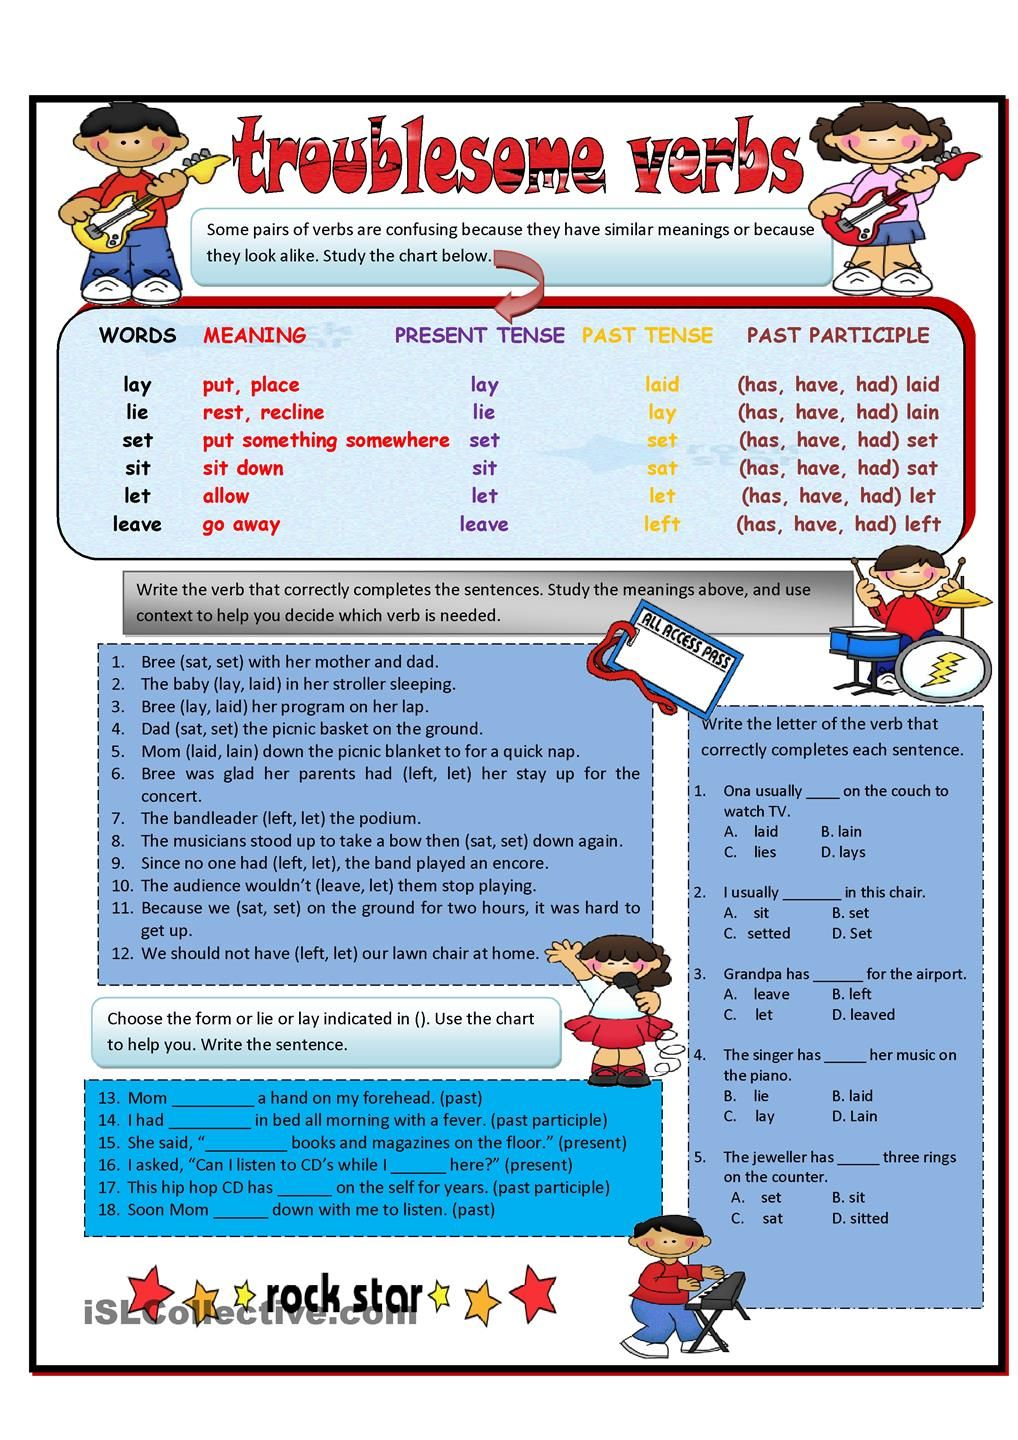 Troublesome Verbs Part 1 Lay Lie Set Let Leave Grammar And Vocabulary Verb Teaching English [ 1440 x 1018 Pixel ]